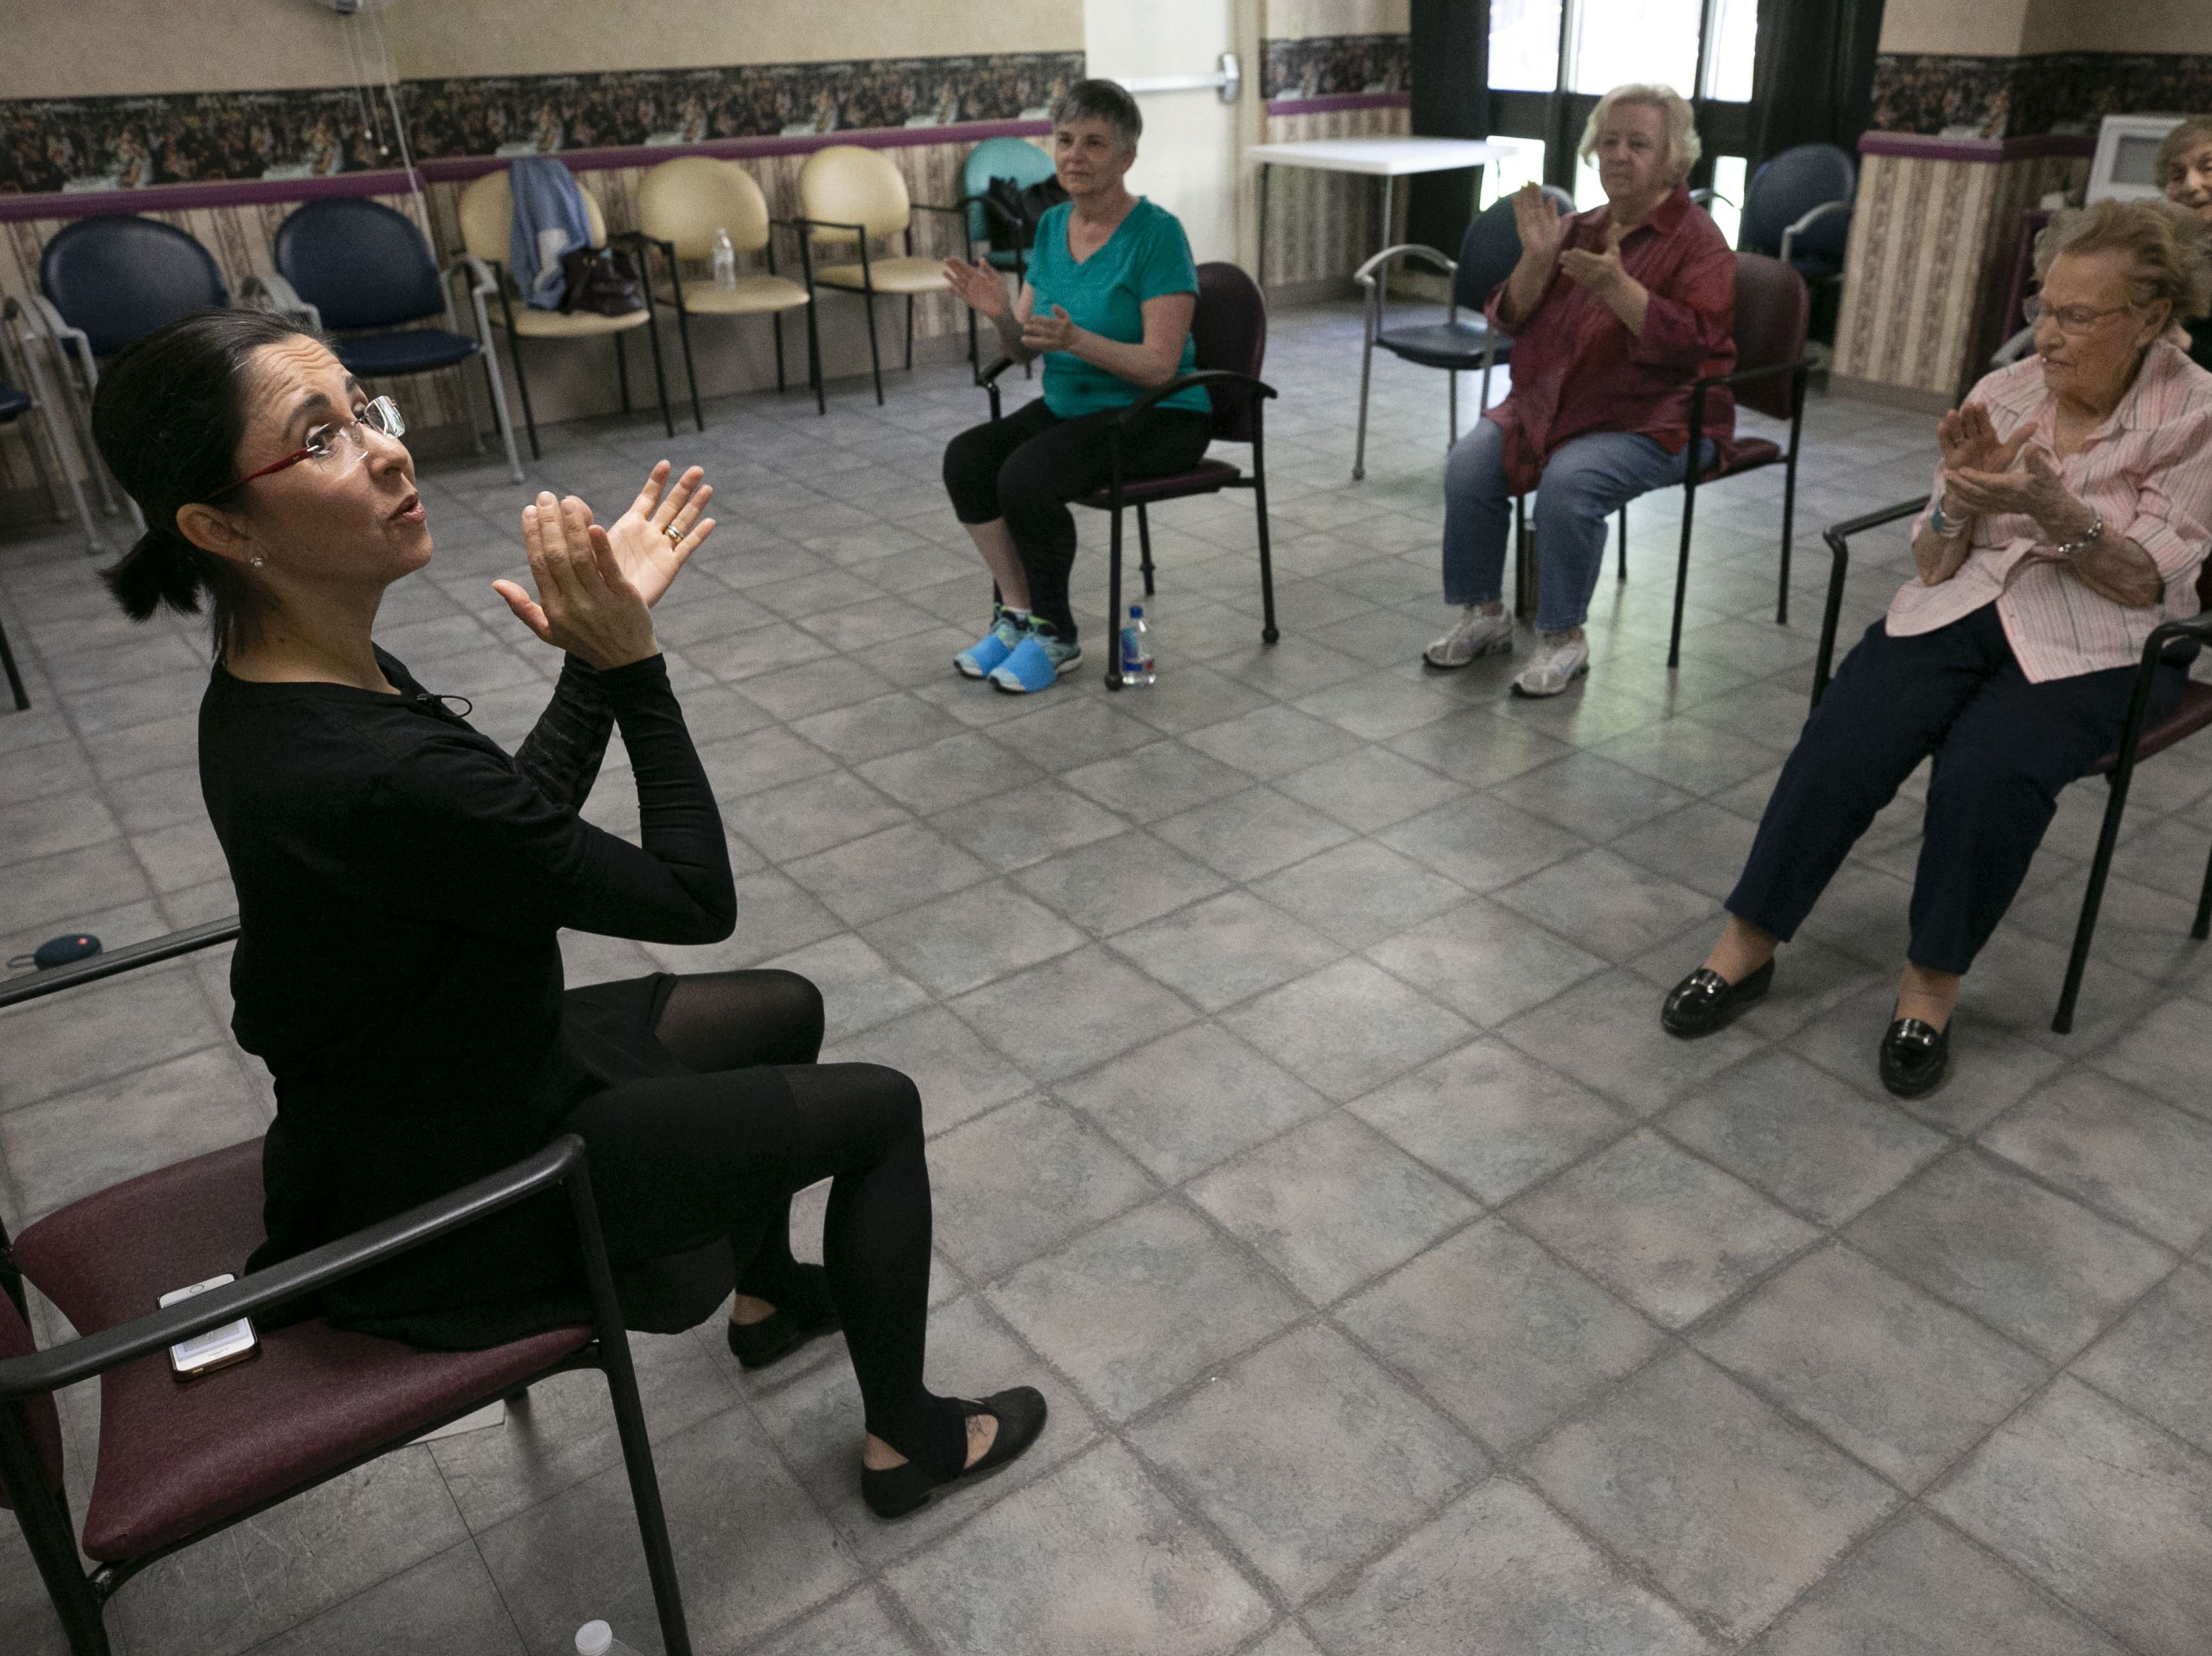 Fabiola Ambrosio, a faculty member with Ballet Arizona, leads a ballet class during Ballet Arizona's Creative Aging class at the Jewish Family & Children's Service Center for Senior Enrichment in the Palazzo Assisted Living Facility in Phoenix on Nov. 27, 2018.